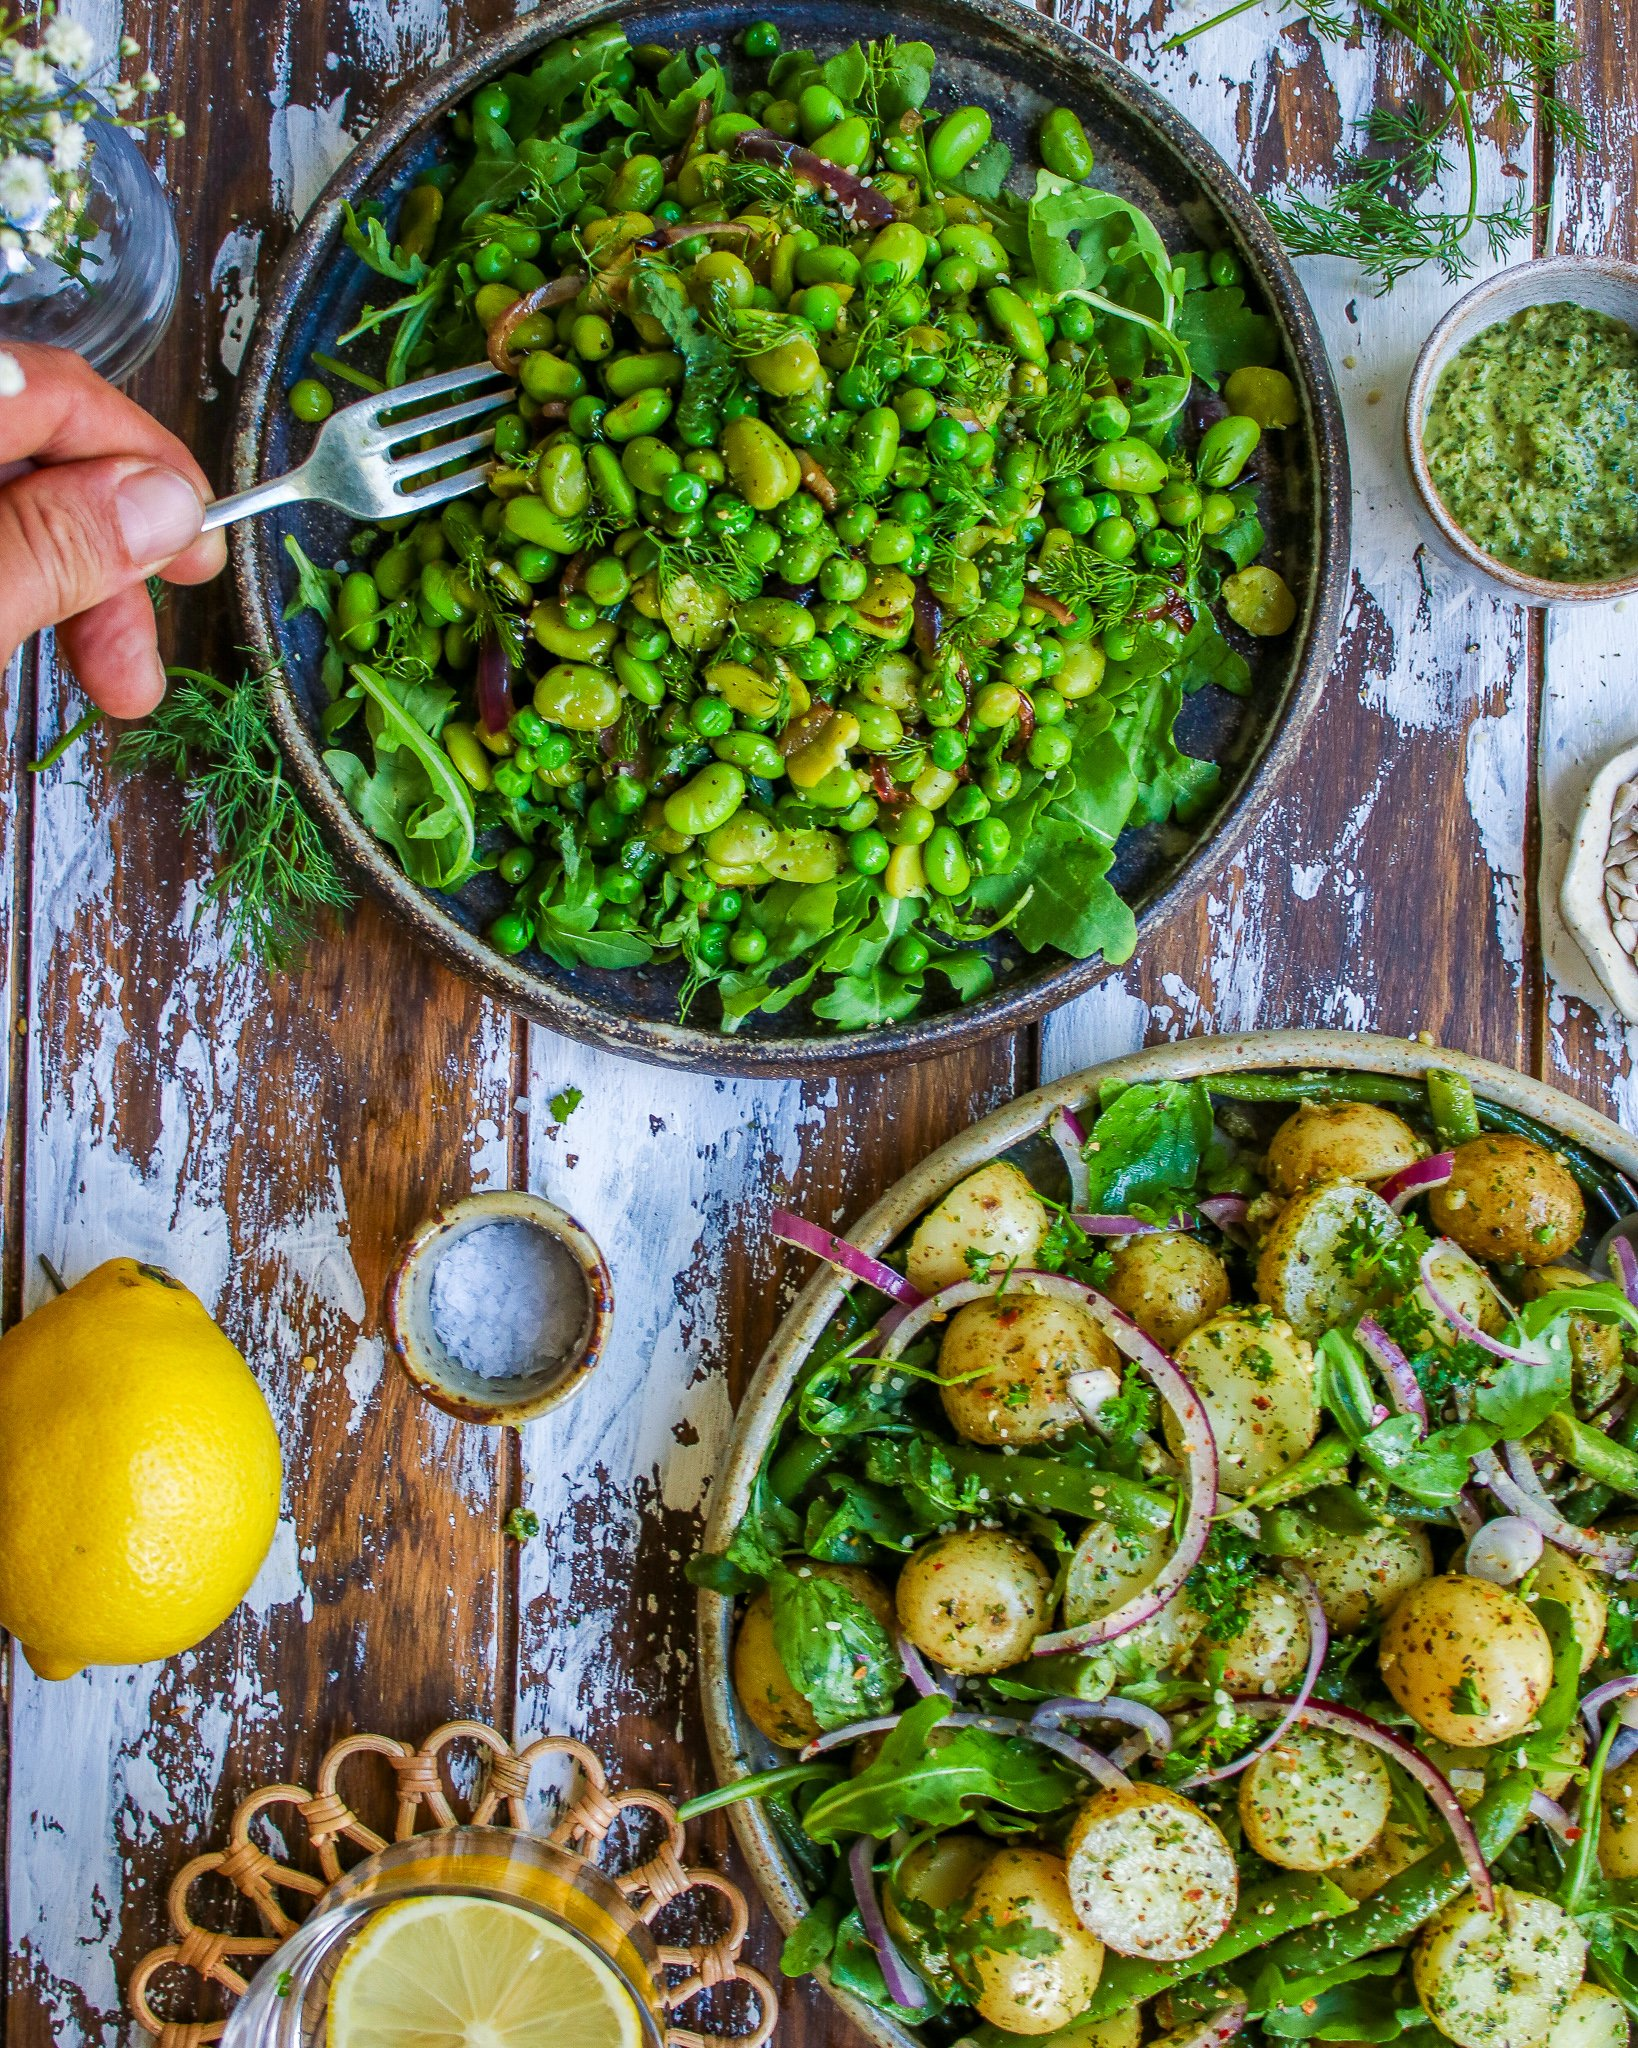 Pea & Edamame + Baby Potatoes and Green Bean Salads